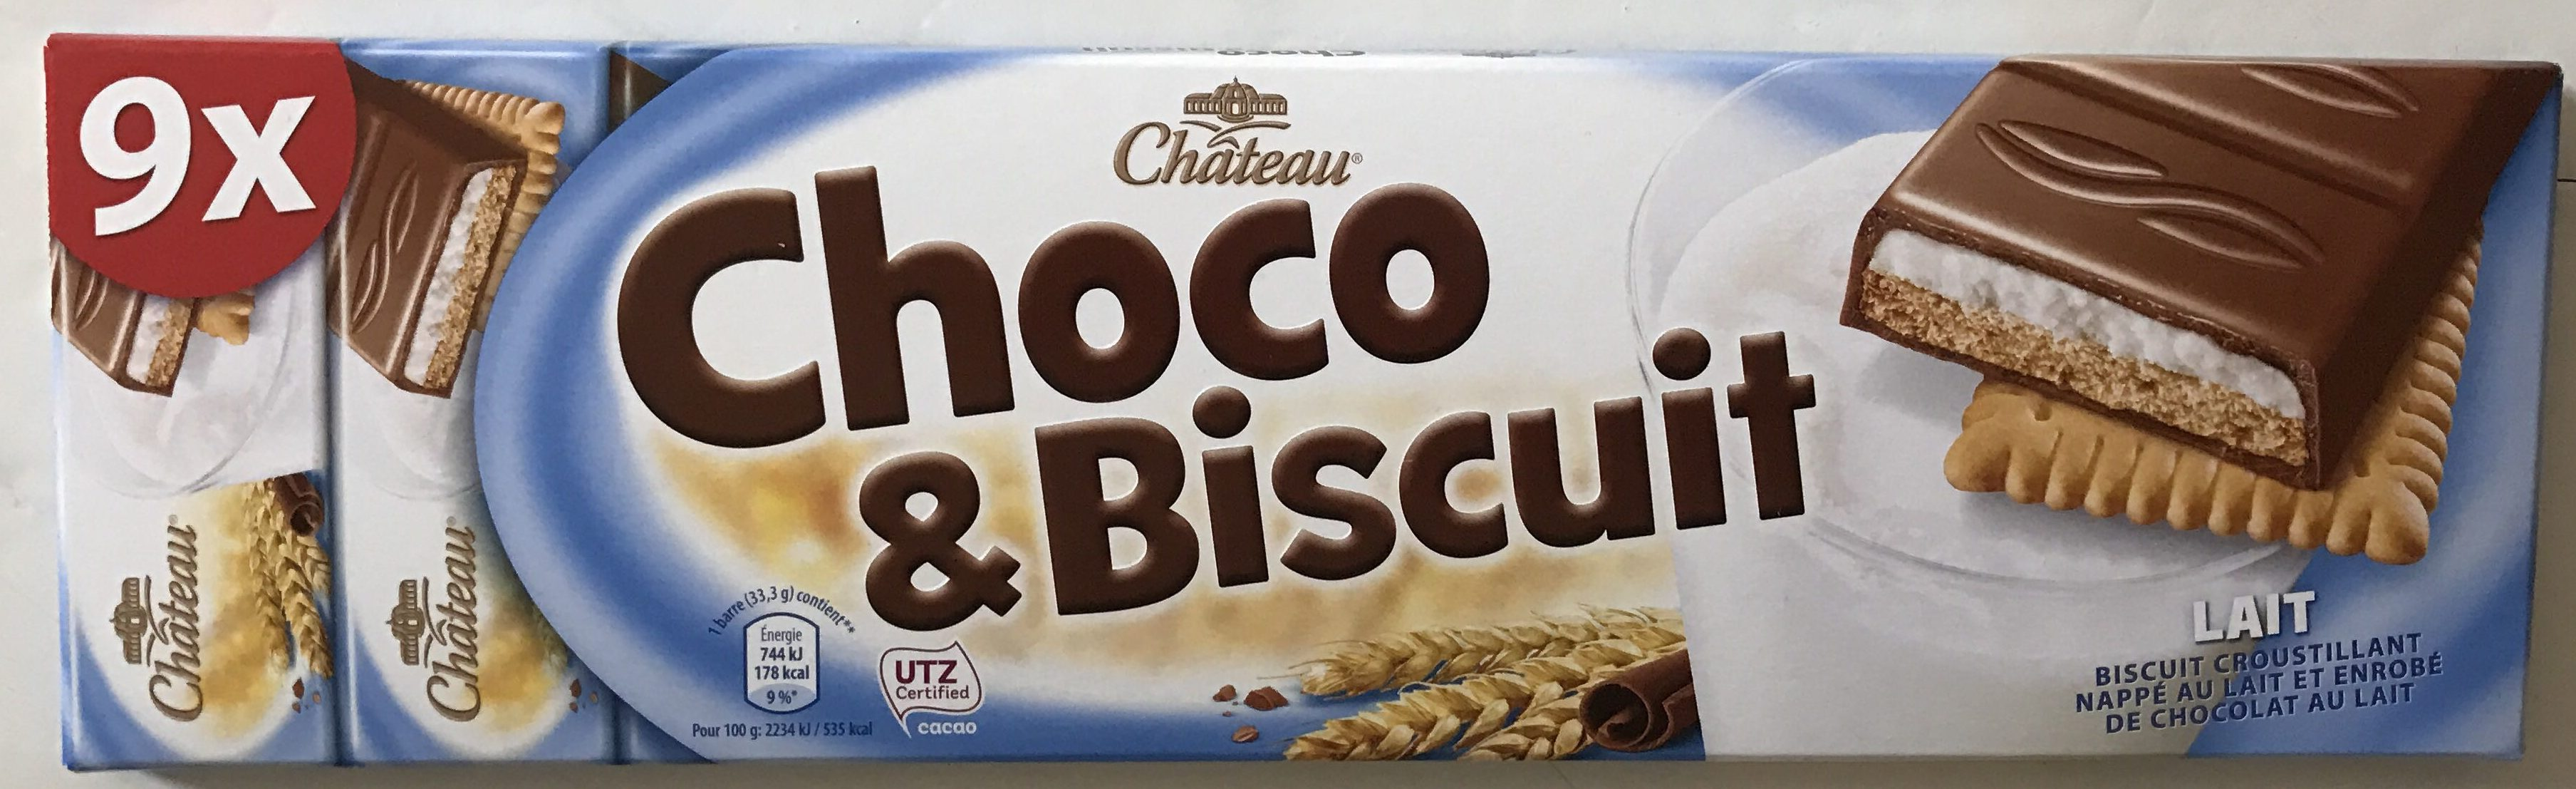 Choco & Biscuit Lait ou Choco & Biscuit Cappuccino - Product